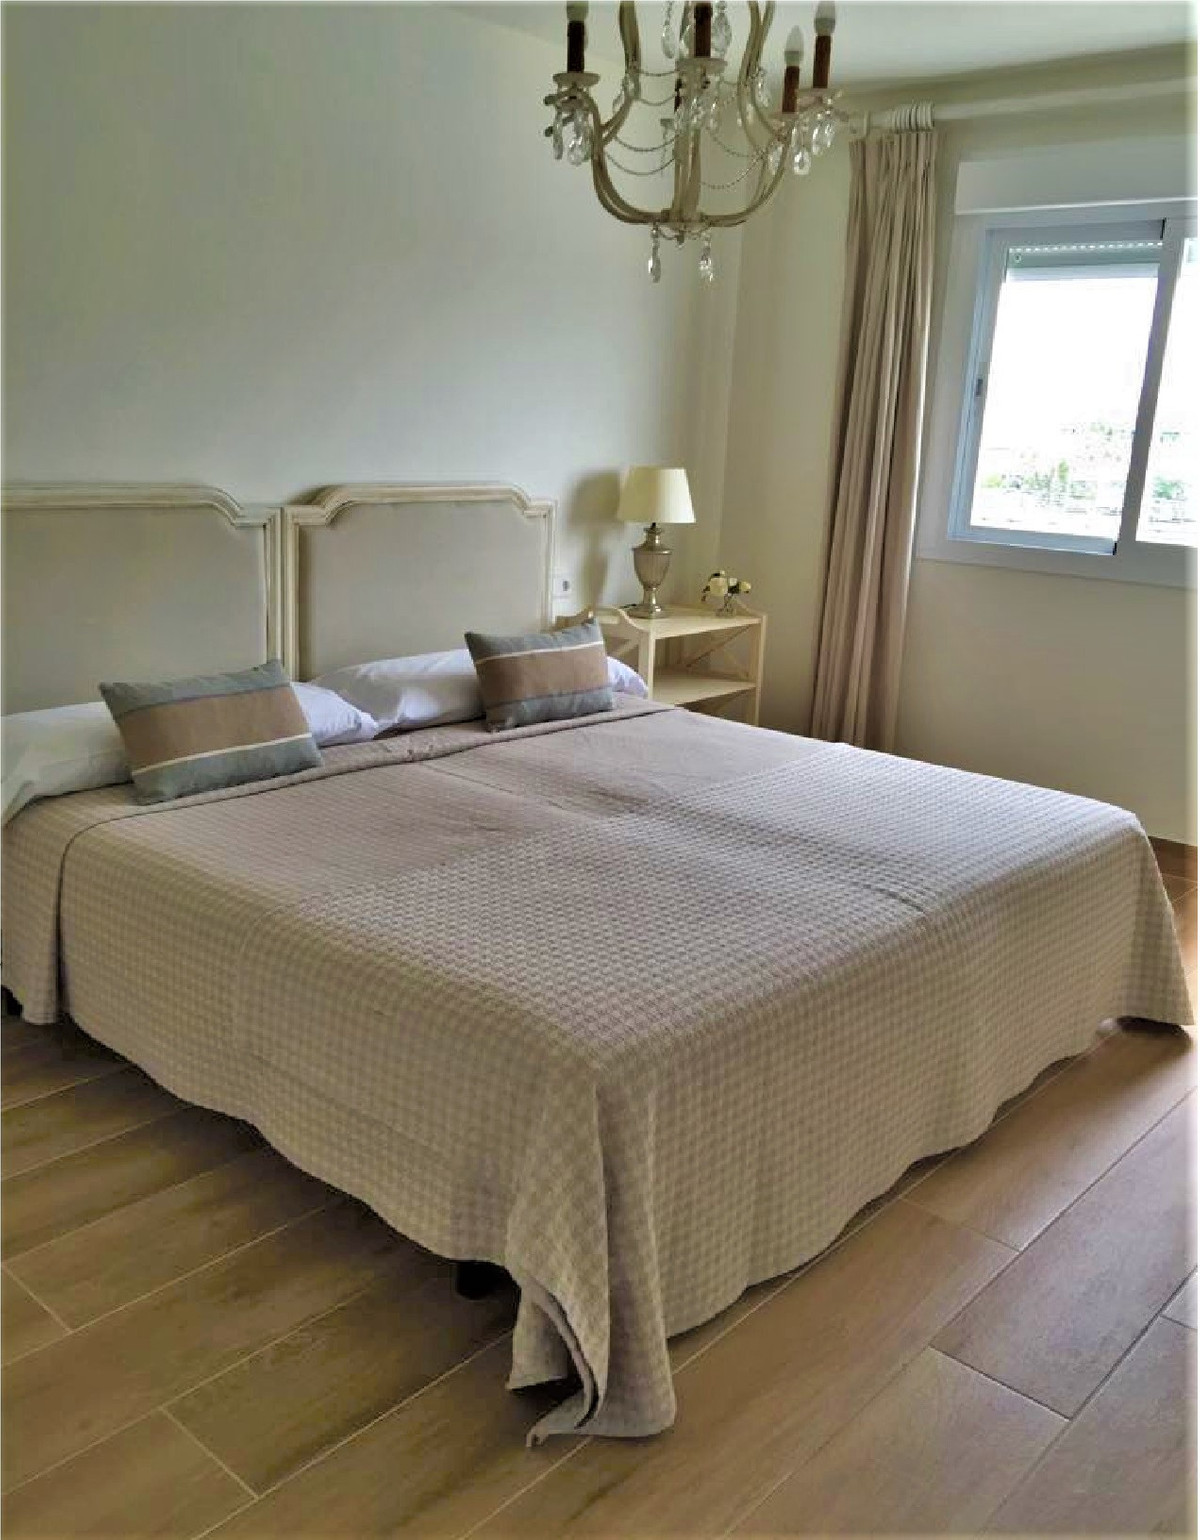 3 Bedroom Middle Floor Apartment For Sale San Pedro de Alcántara